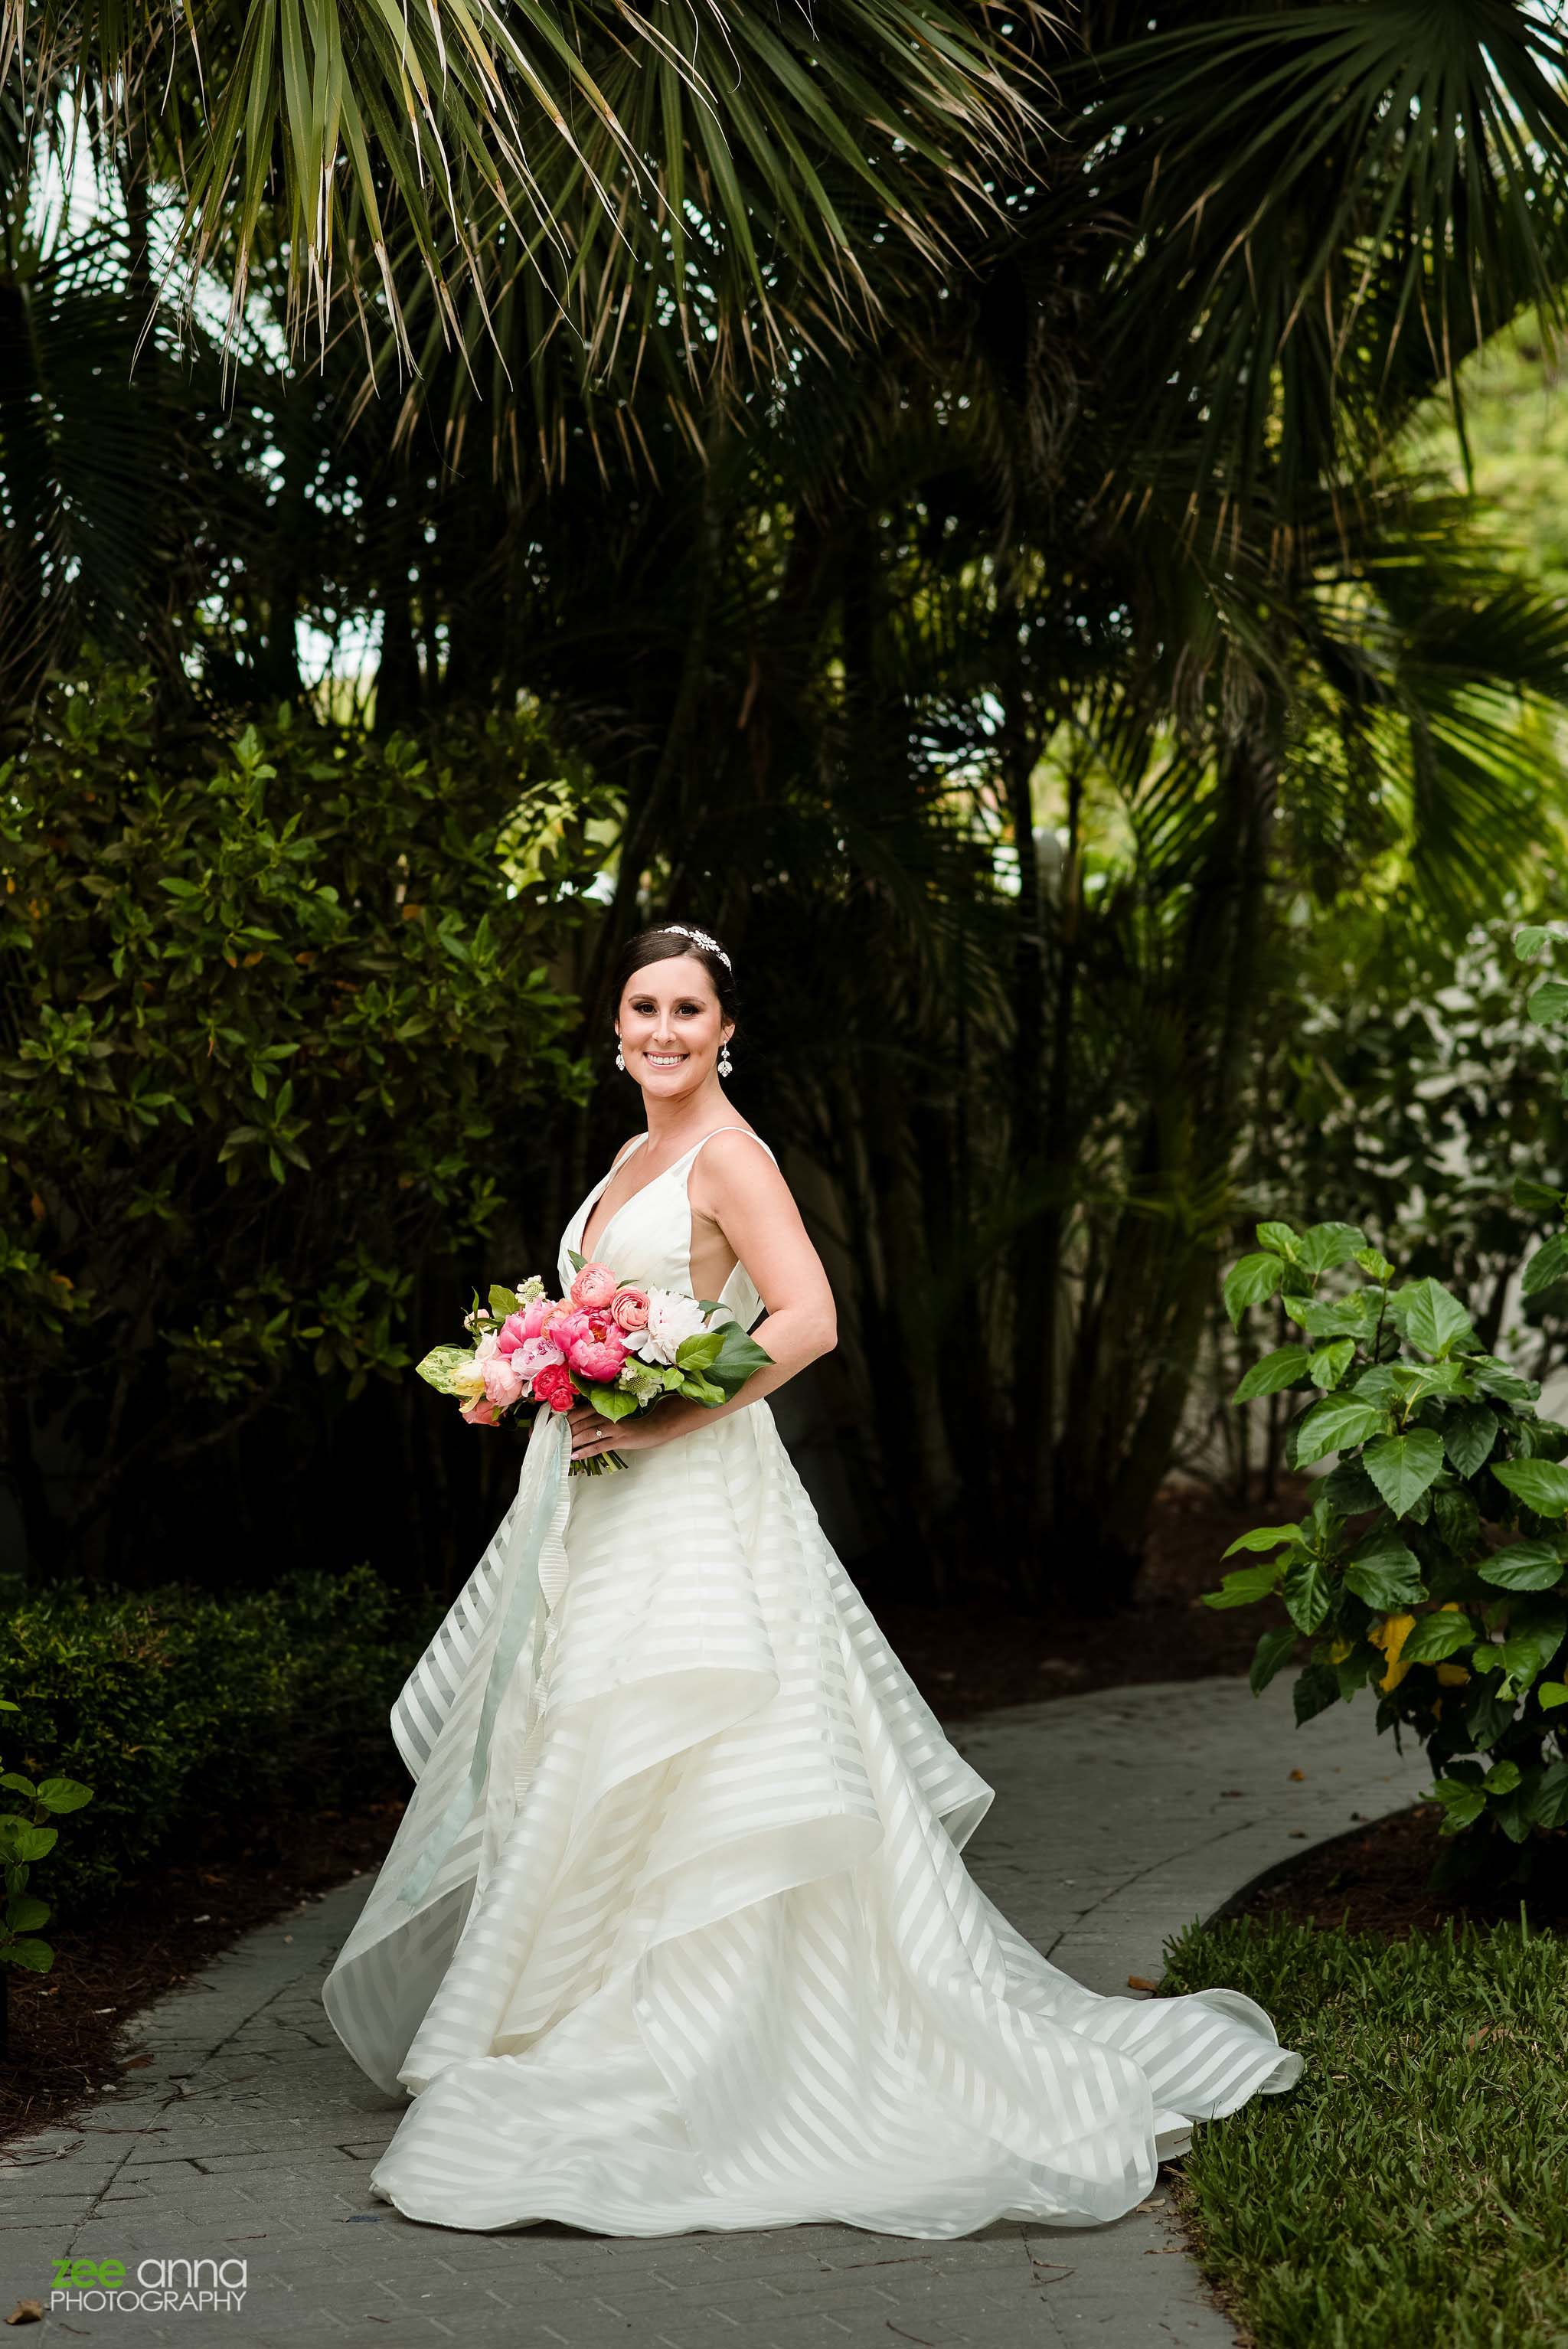 striped wedding dress island greenery